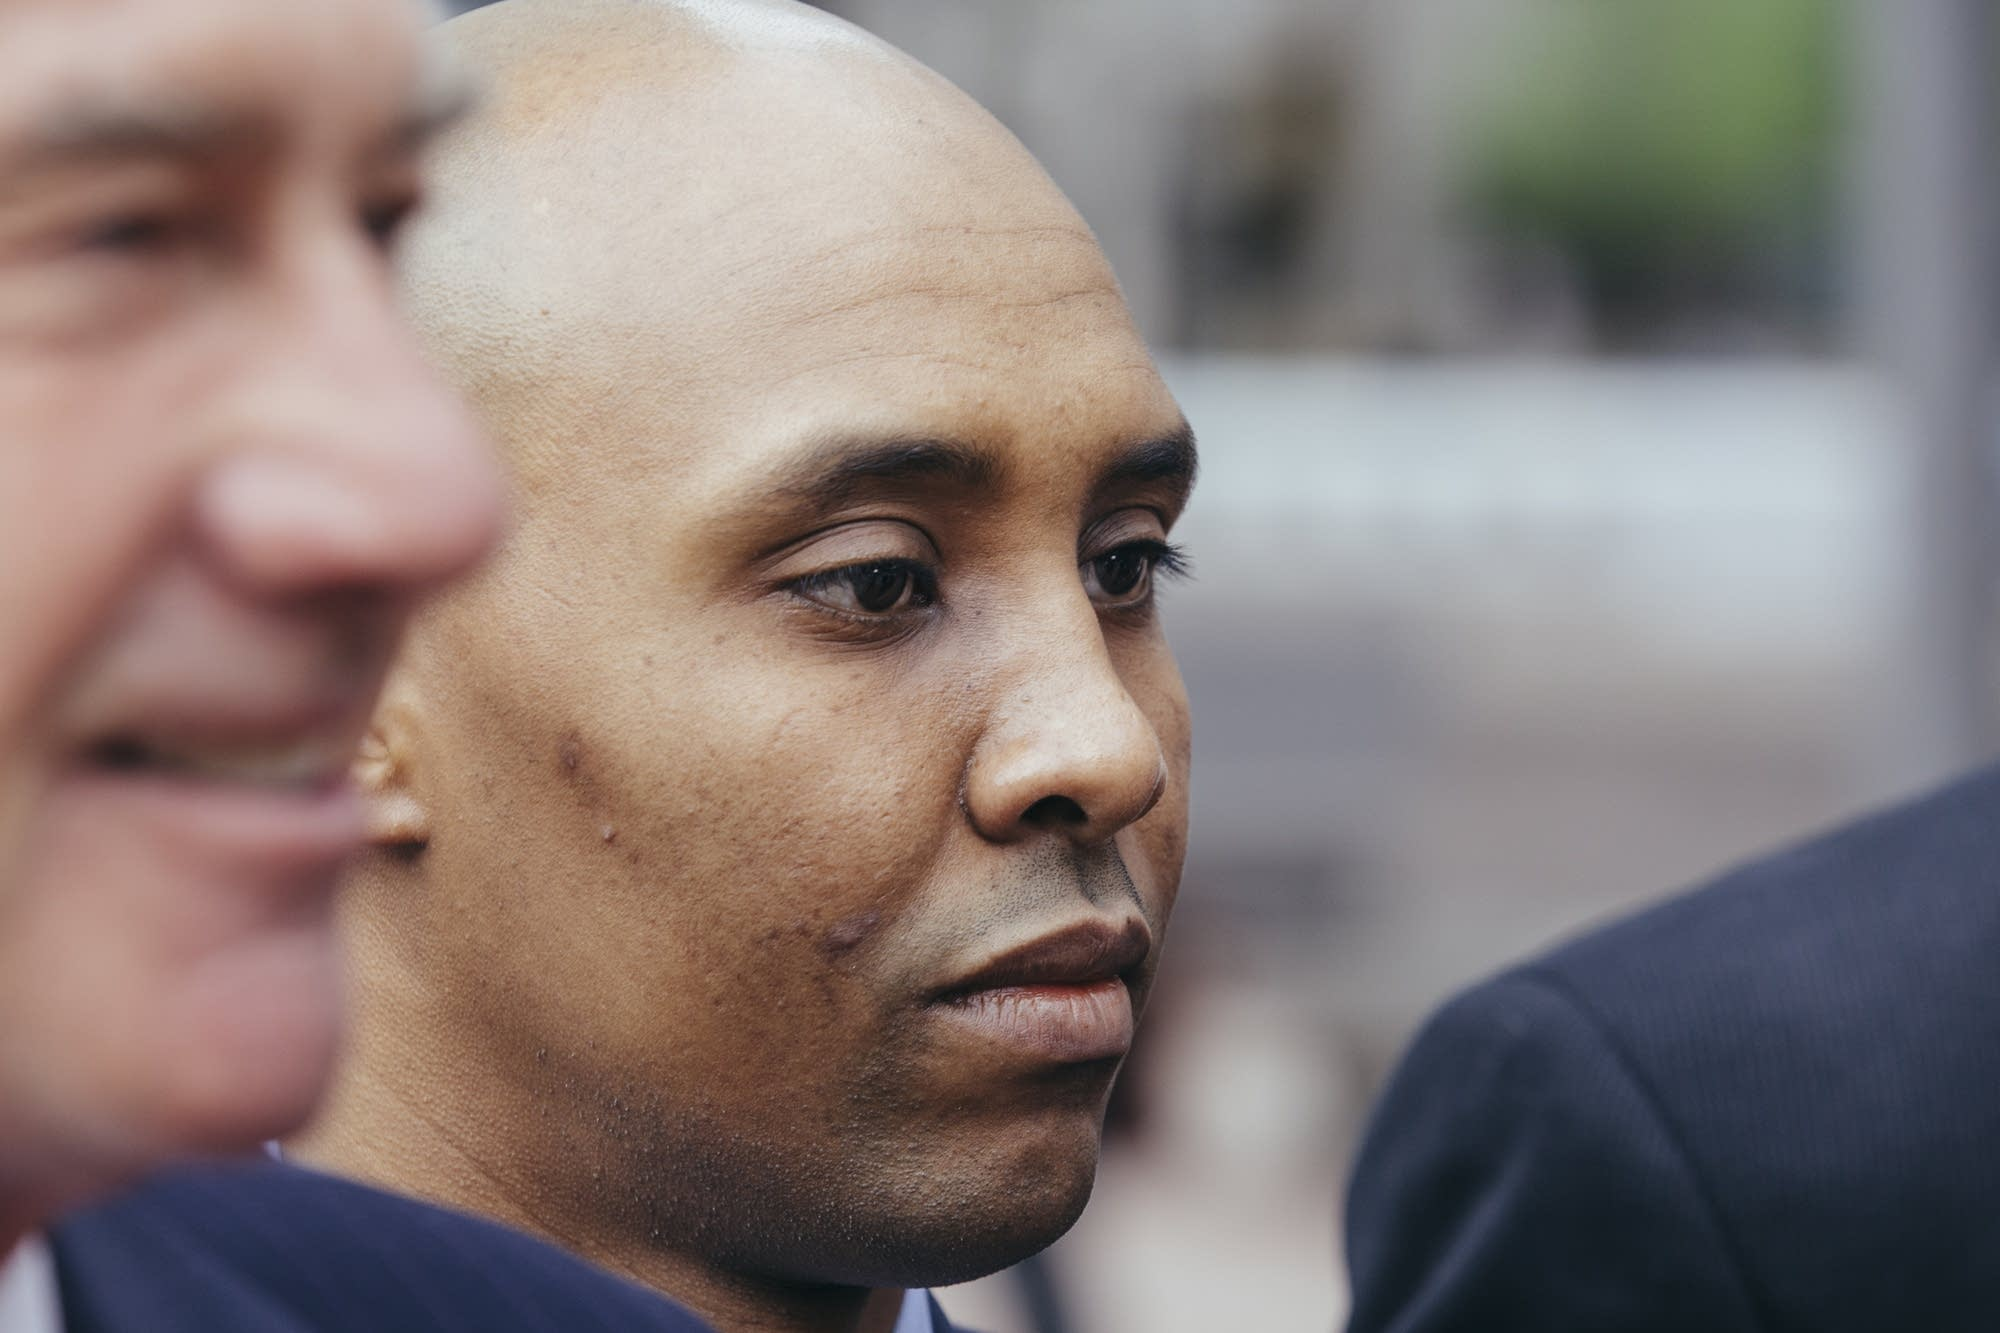 Mohamed Noor walks outside of the Hennepin County Government Center.